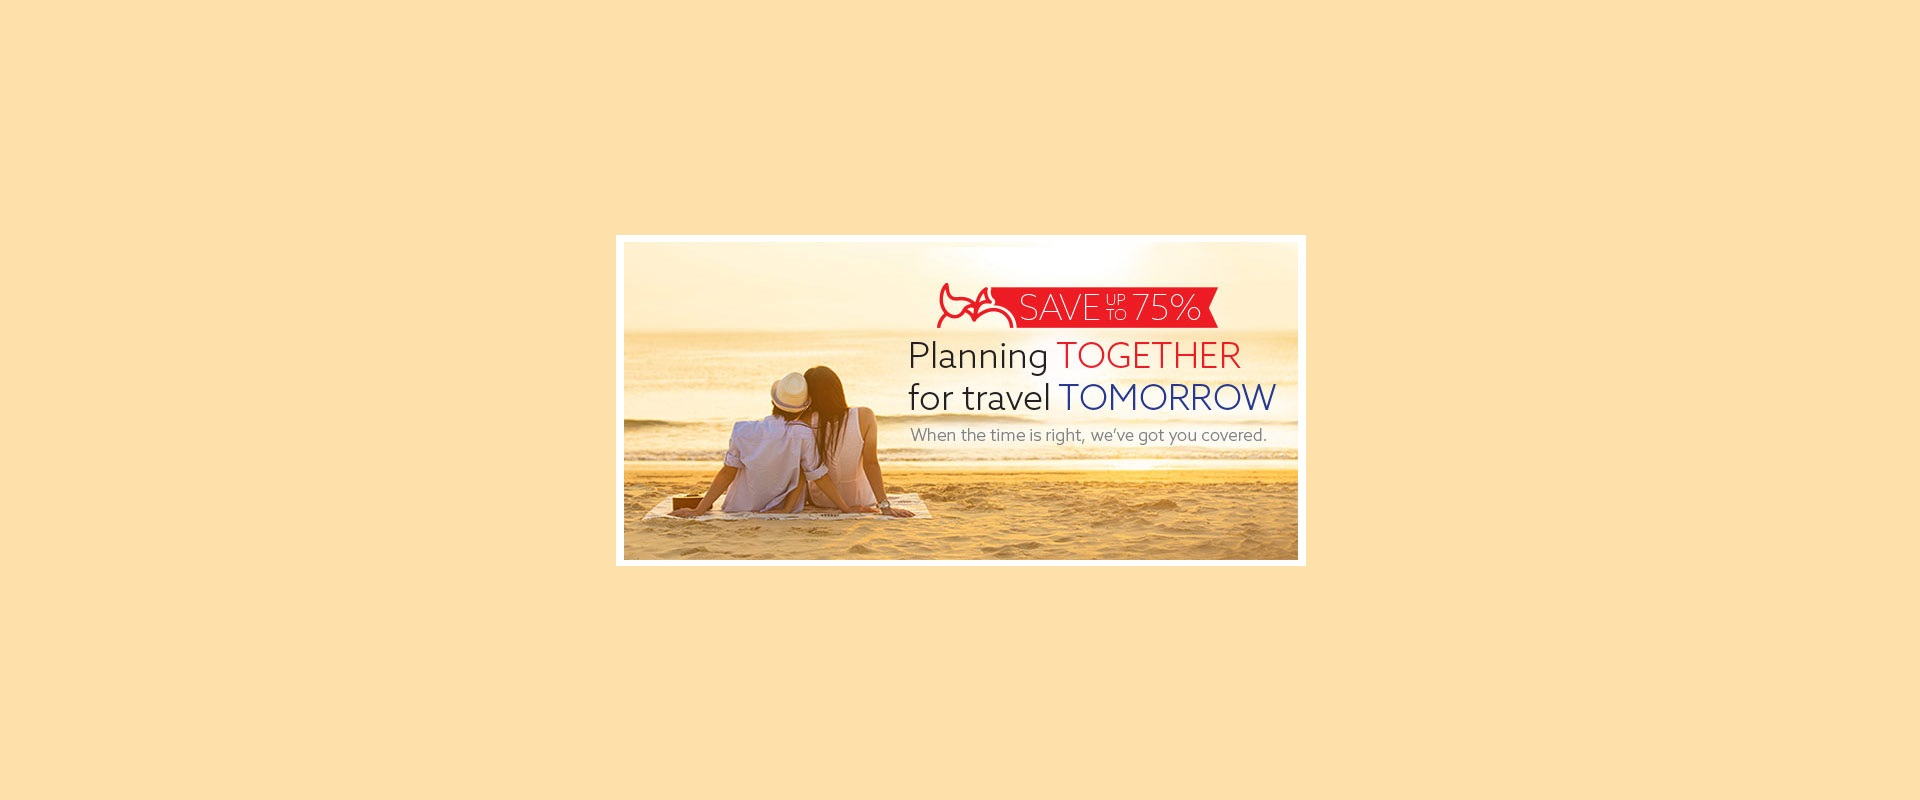 Planning-Together-For-Travel-Tomorrow-Banner